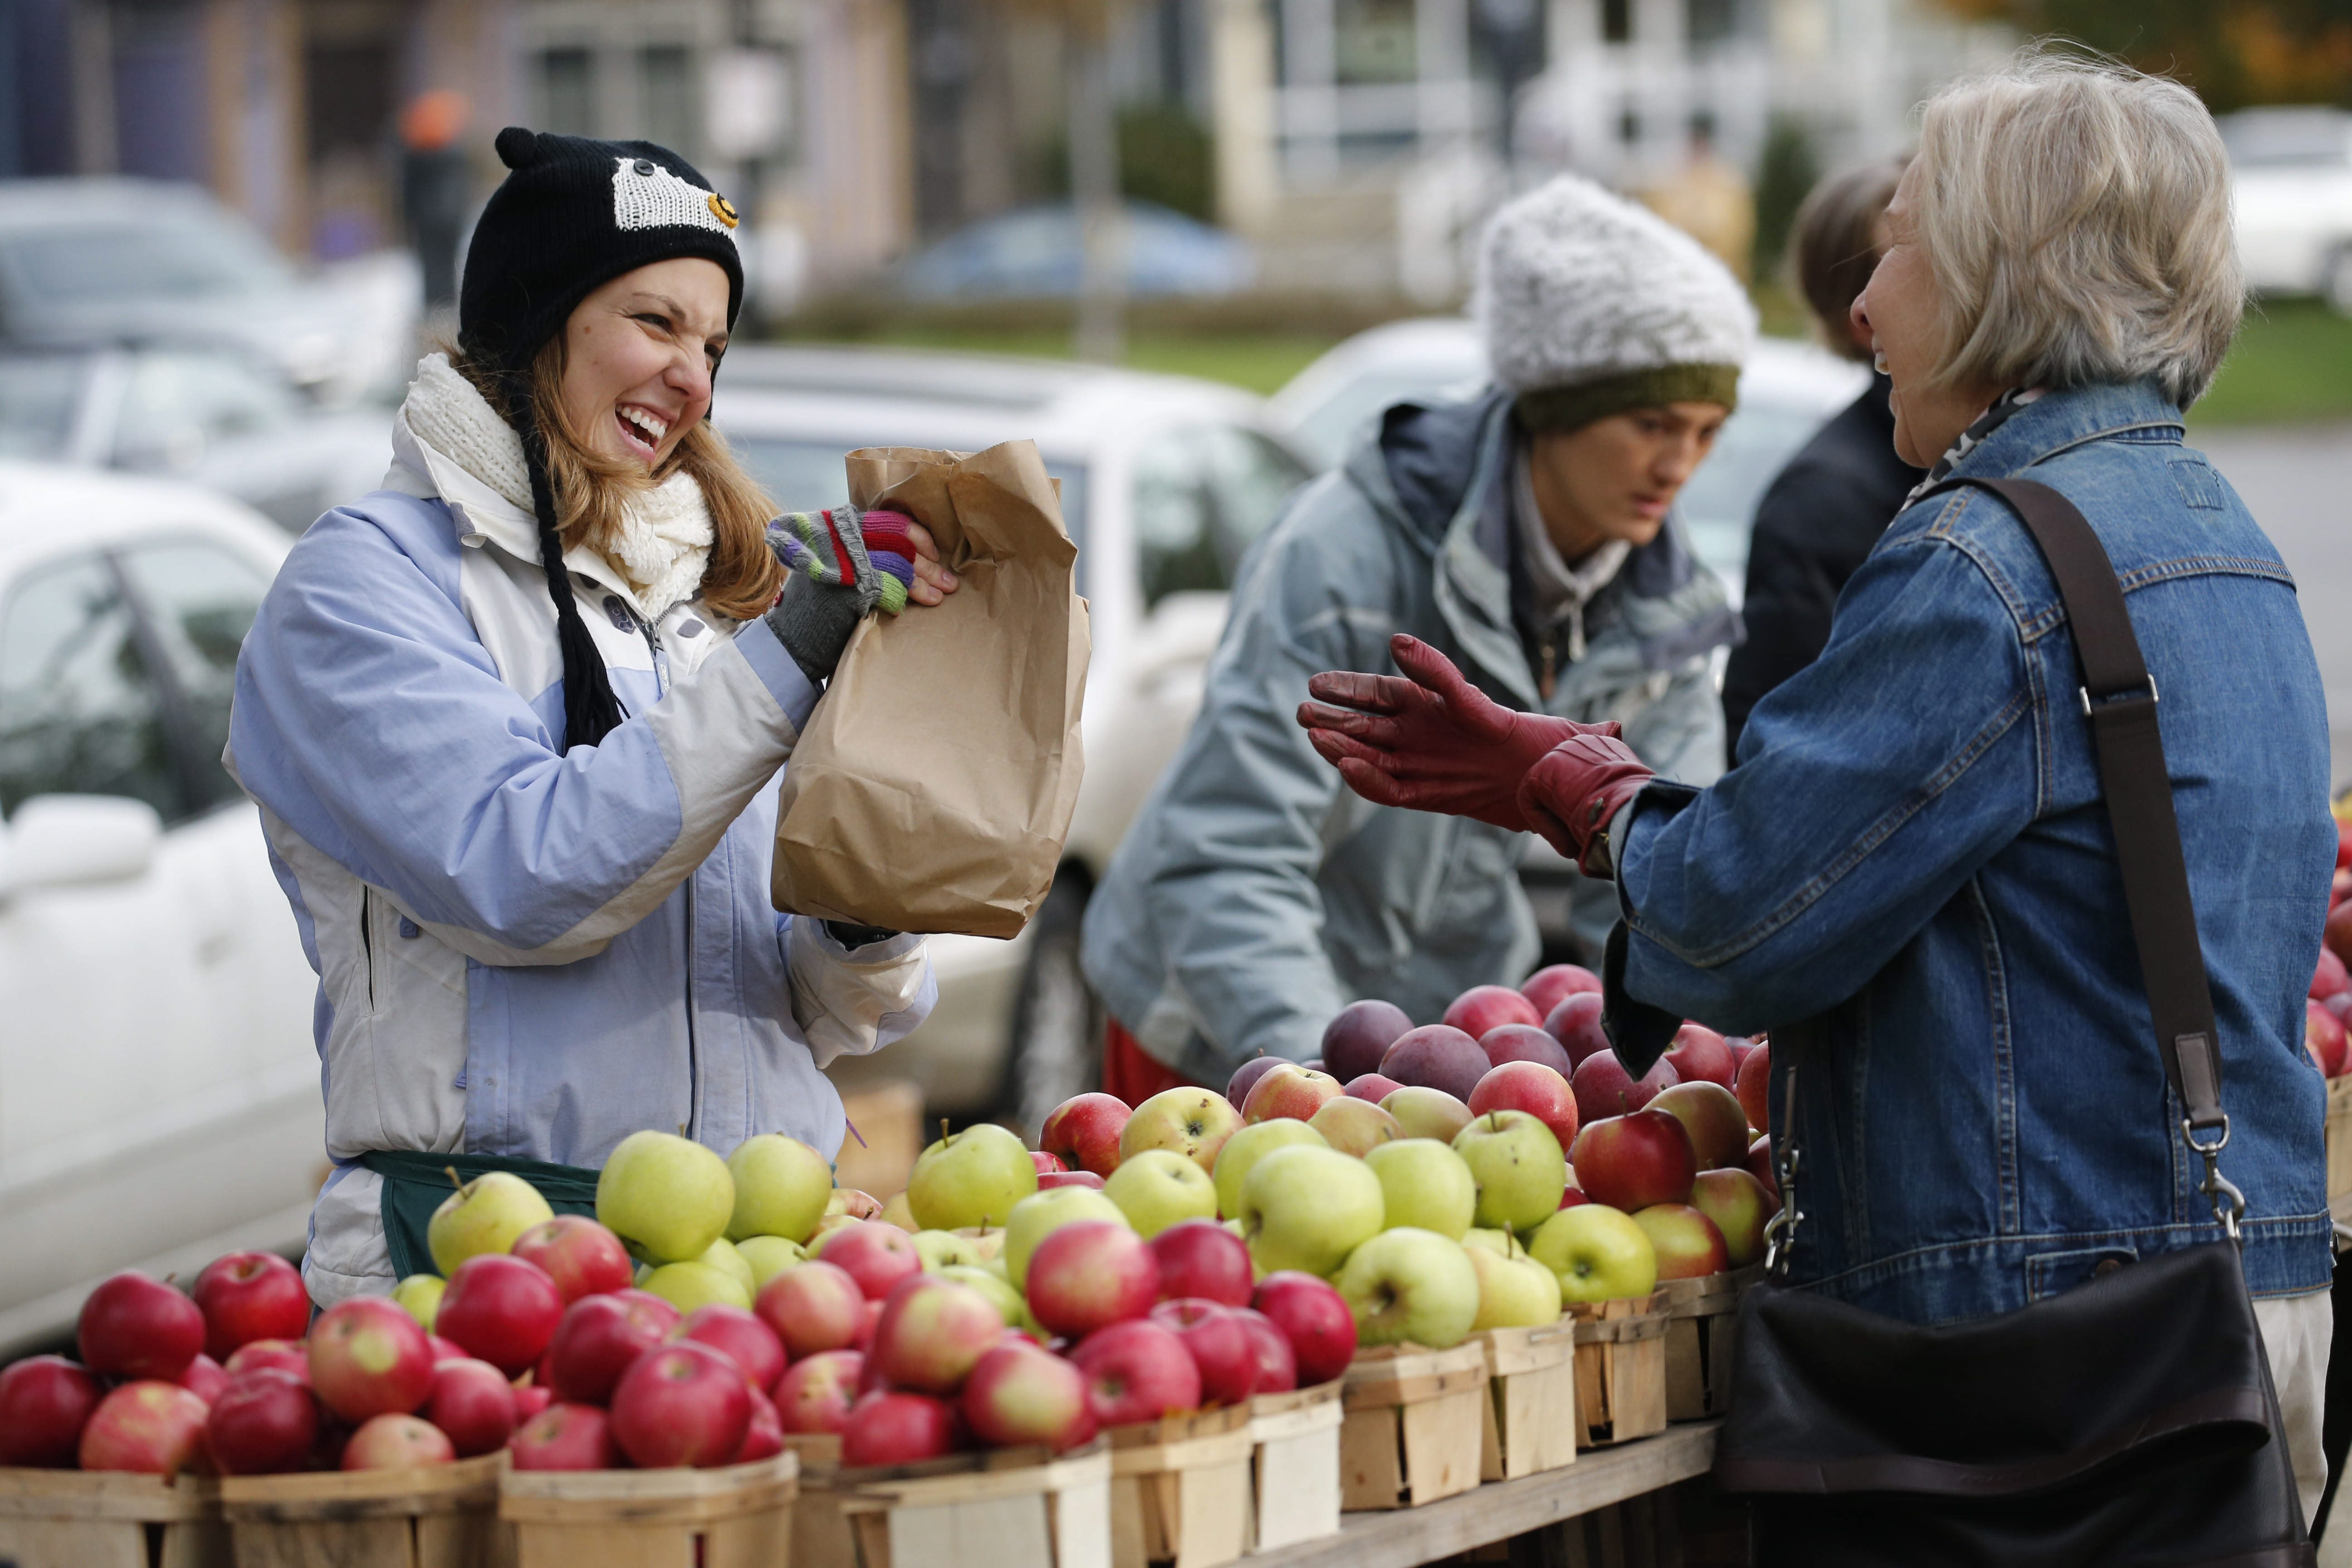 A customer purchases apples at the Tom Tower Farm stand at the Elmwood-Bidwell Farmers Market. (Derek Gee/Buffalo News)